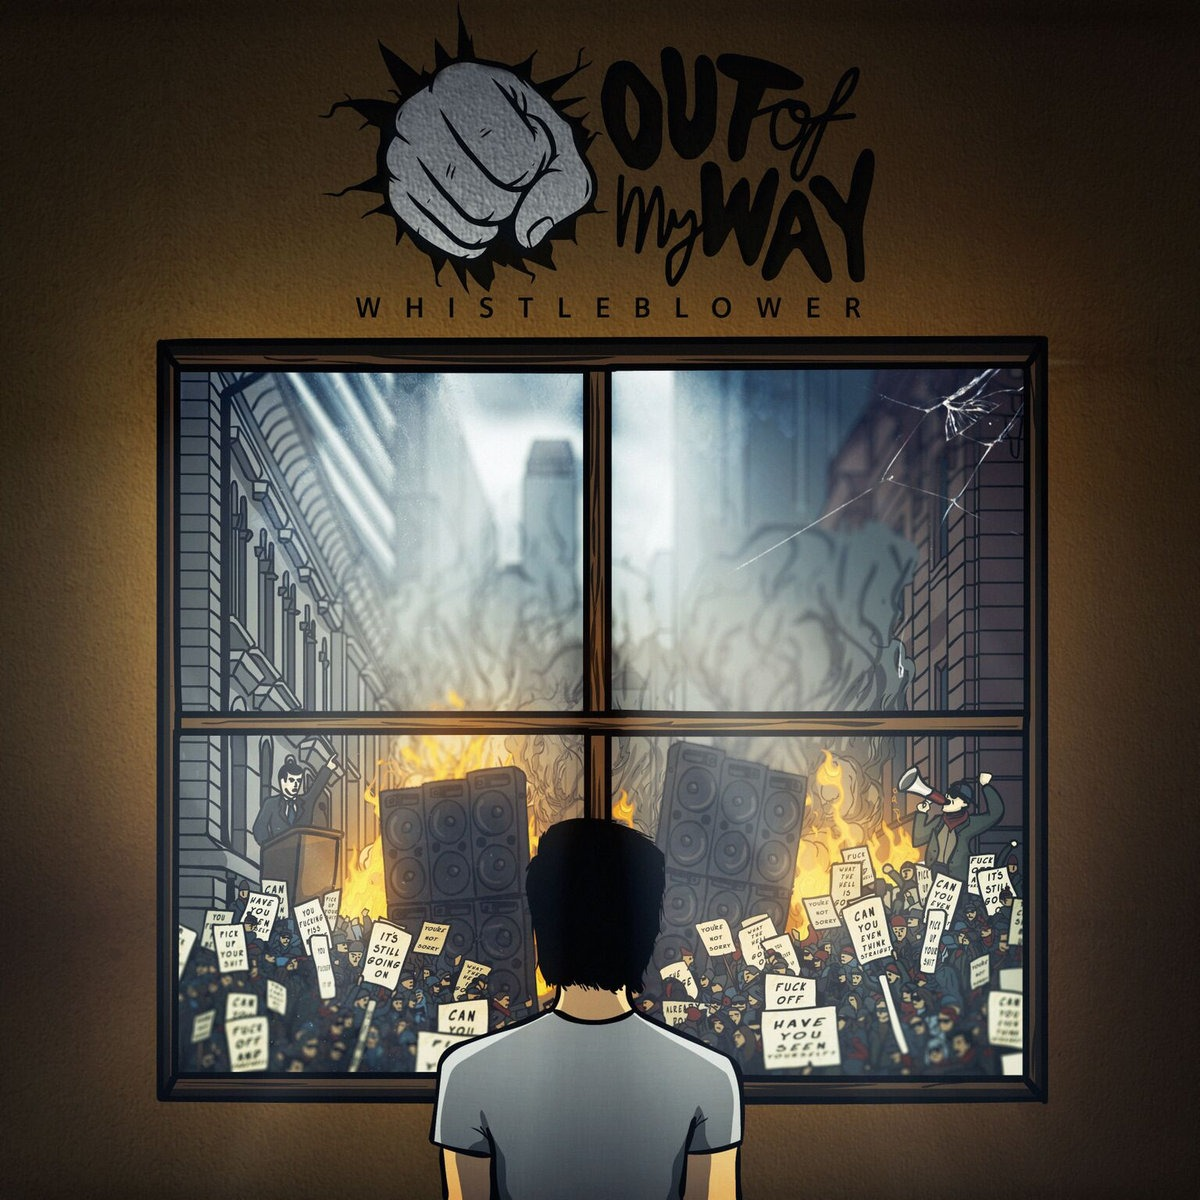 Out of My Way - EP Artwork